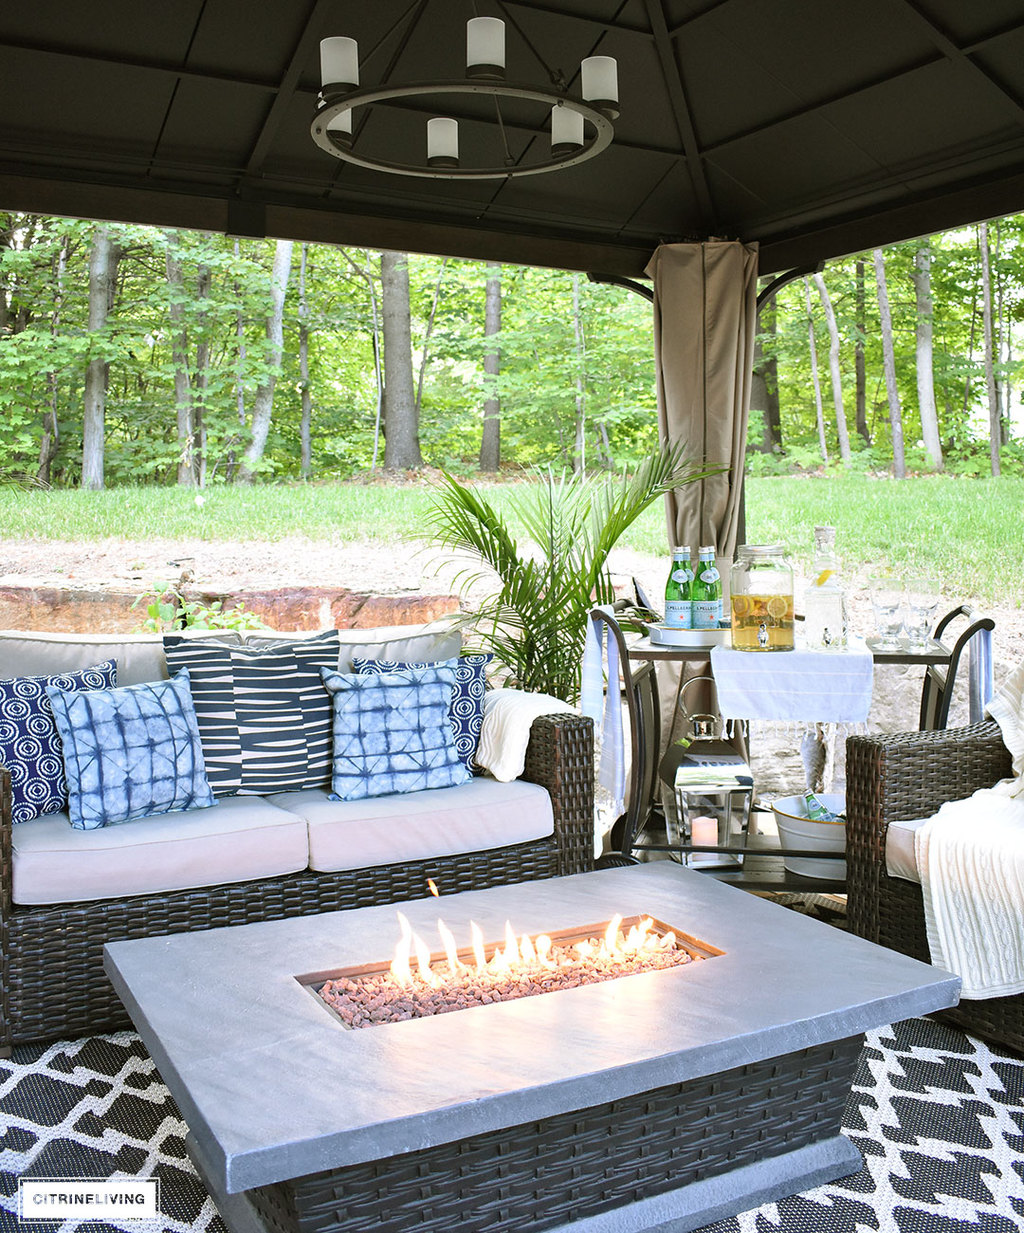 Create the perfect lounging area in your backyard with a beautiful covered gazebo, with added height for an airy, open feel. A gorgeous fire table to keep warm on chilly nights, solar chandelier, resin wicker furniture, and layered accessories create an elegant and sophisticated look.